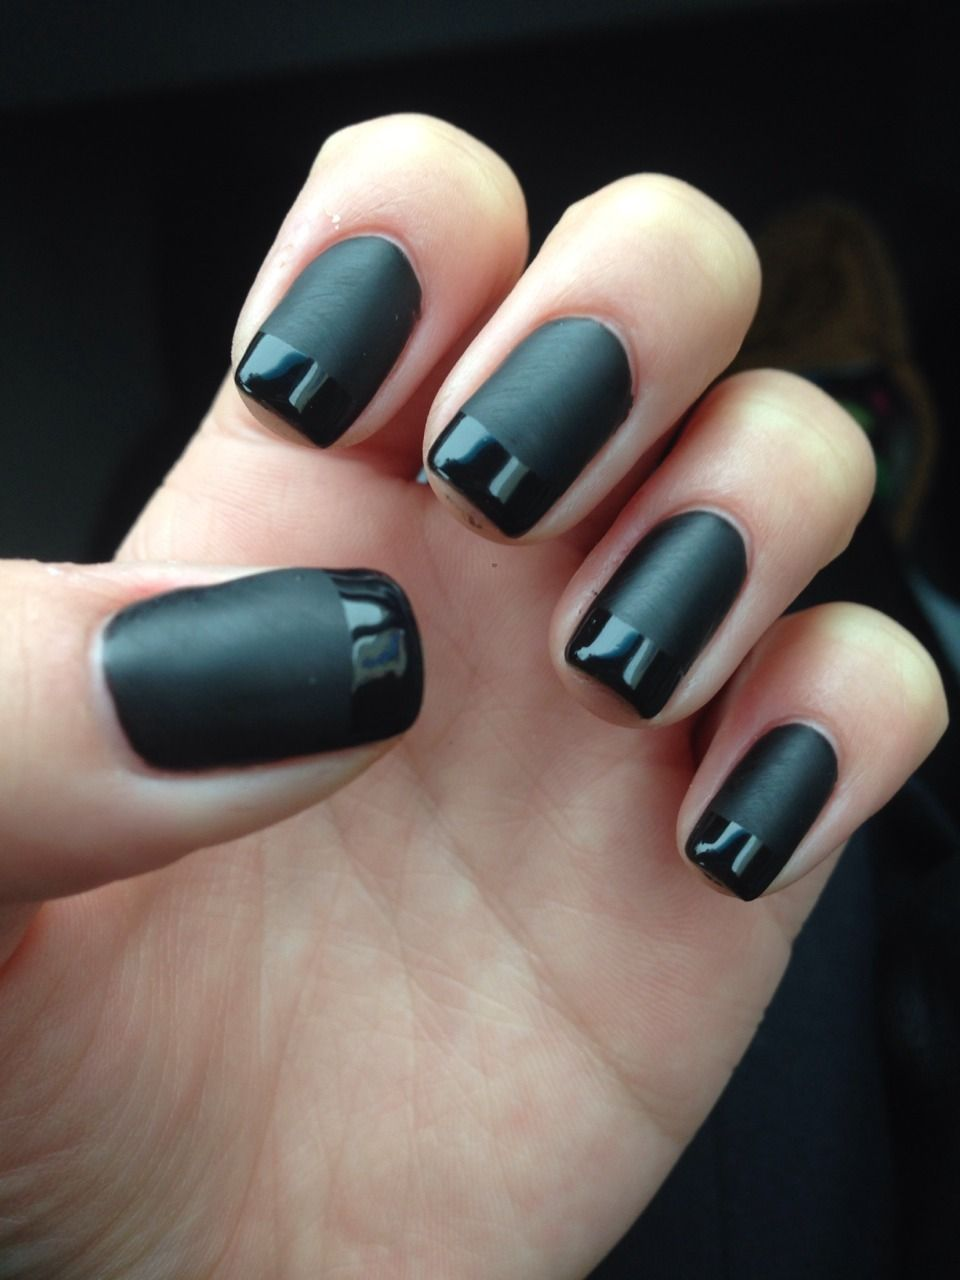 Black matte nails with glossy french manicure. | Make-Up & Nails ...